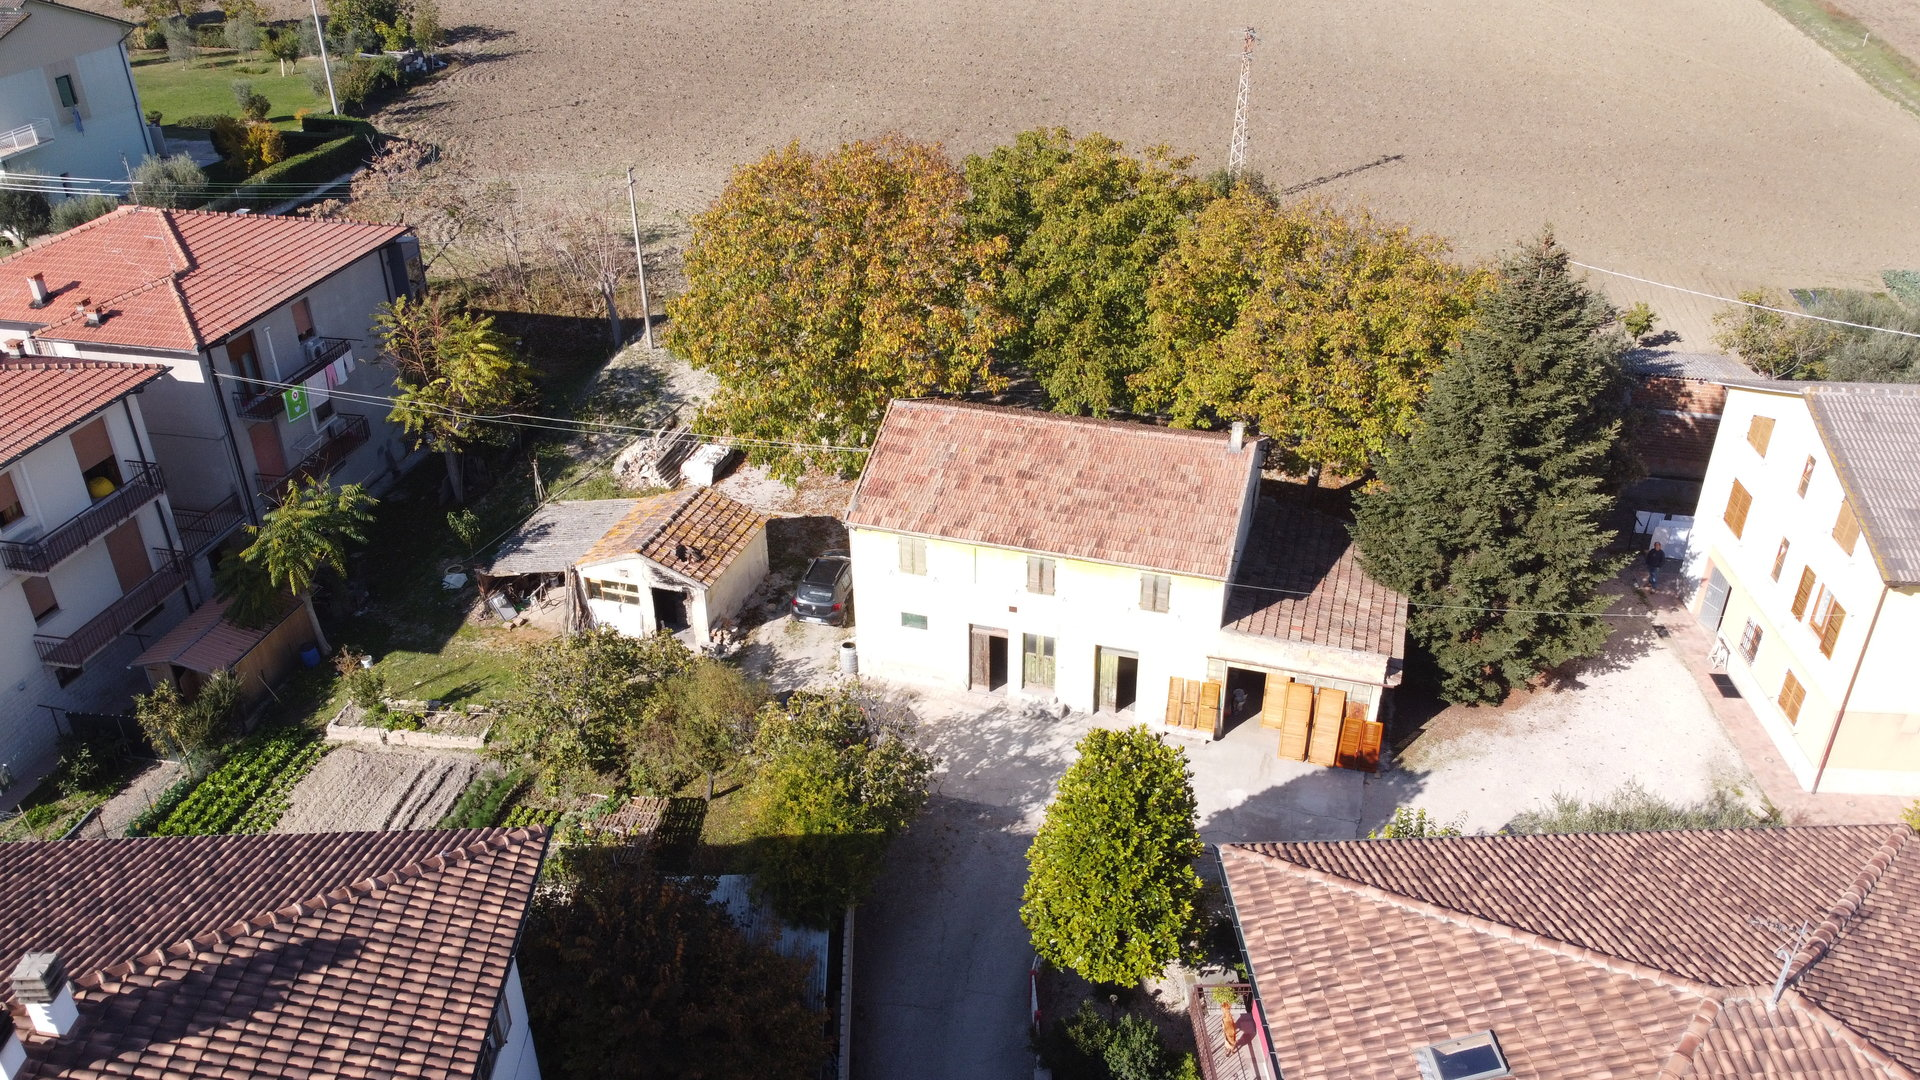 Sale Cottage - Montefelcino Sterpeti - Italy